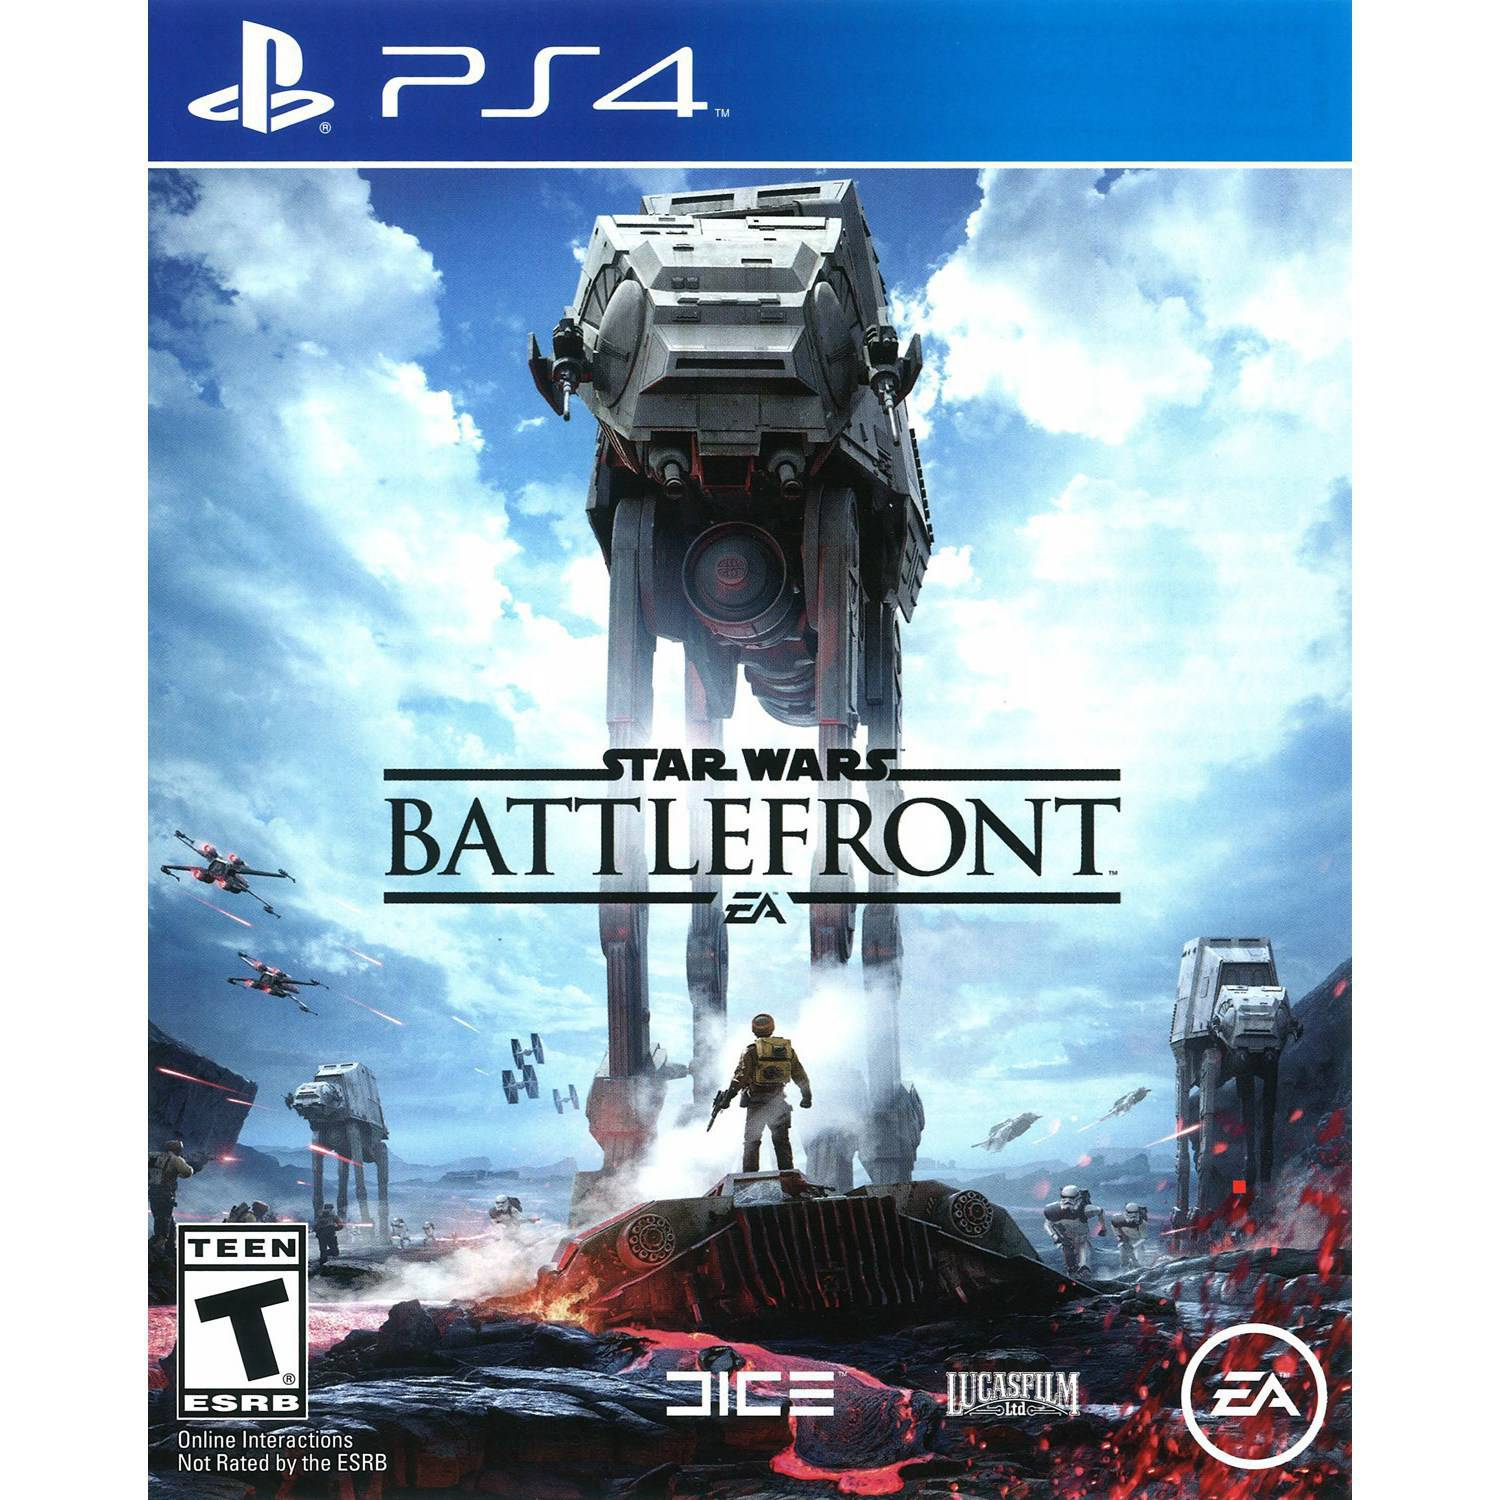 Star Wars Battlefront, Electronic Arts, PlayStation 4, 014633368680 by EA Digital Illusions Creative Entertainment AB (DICE)